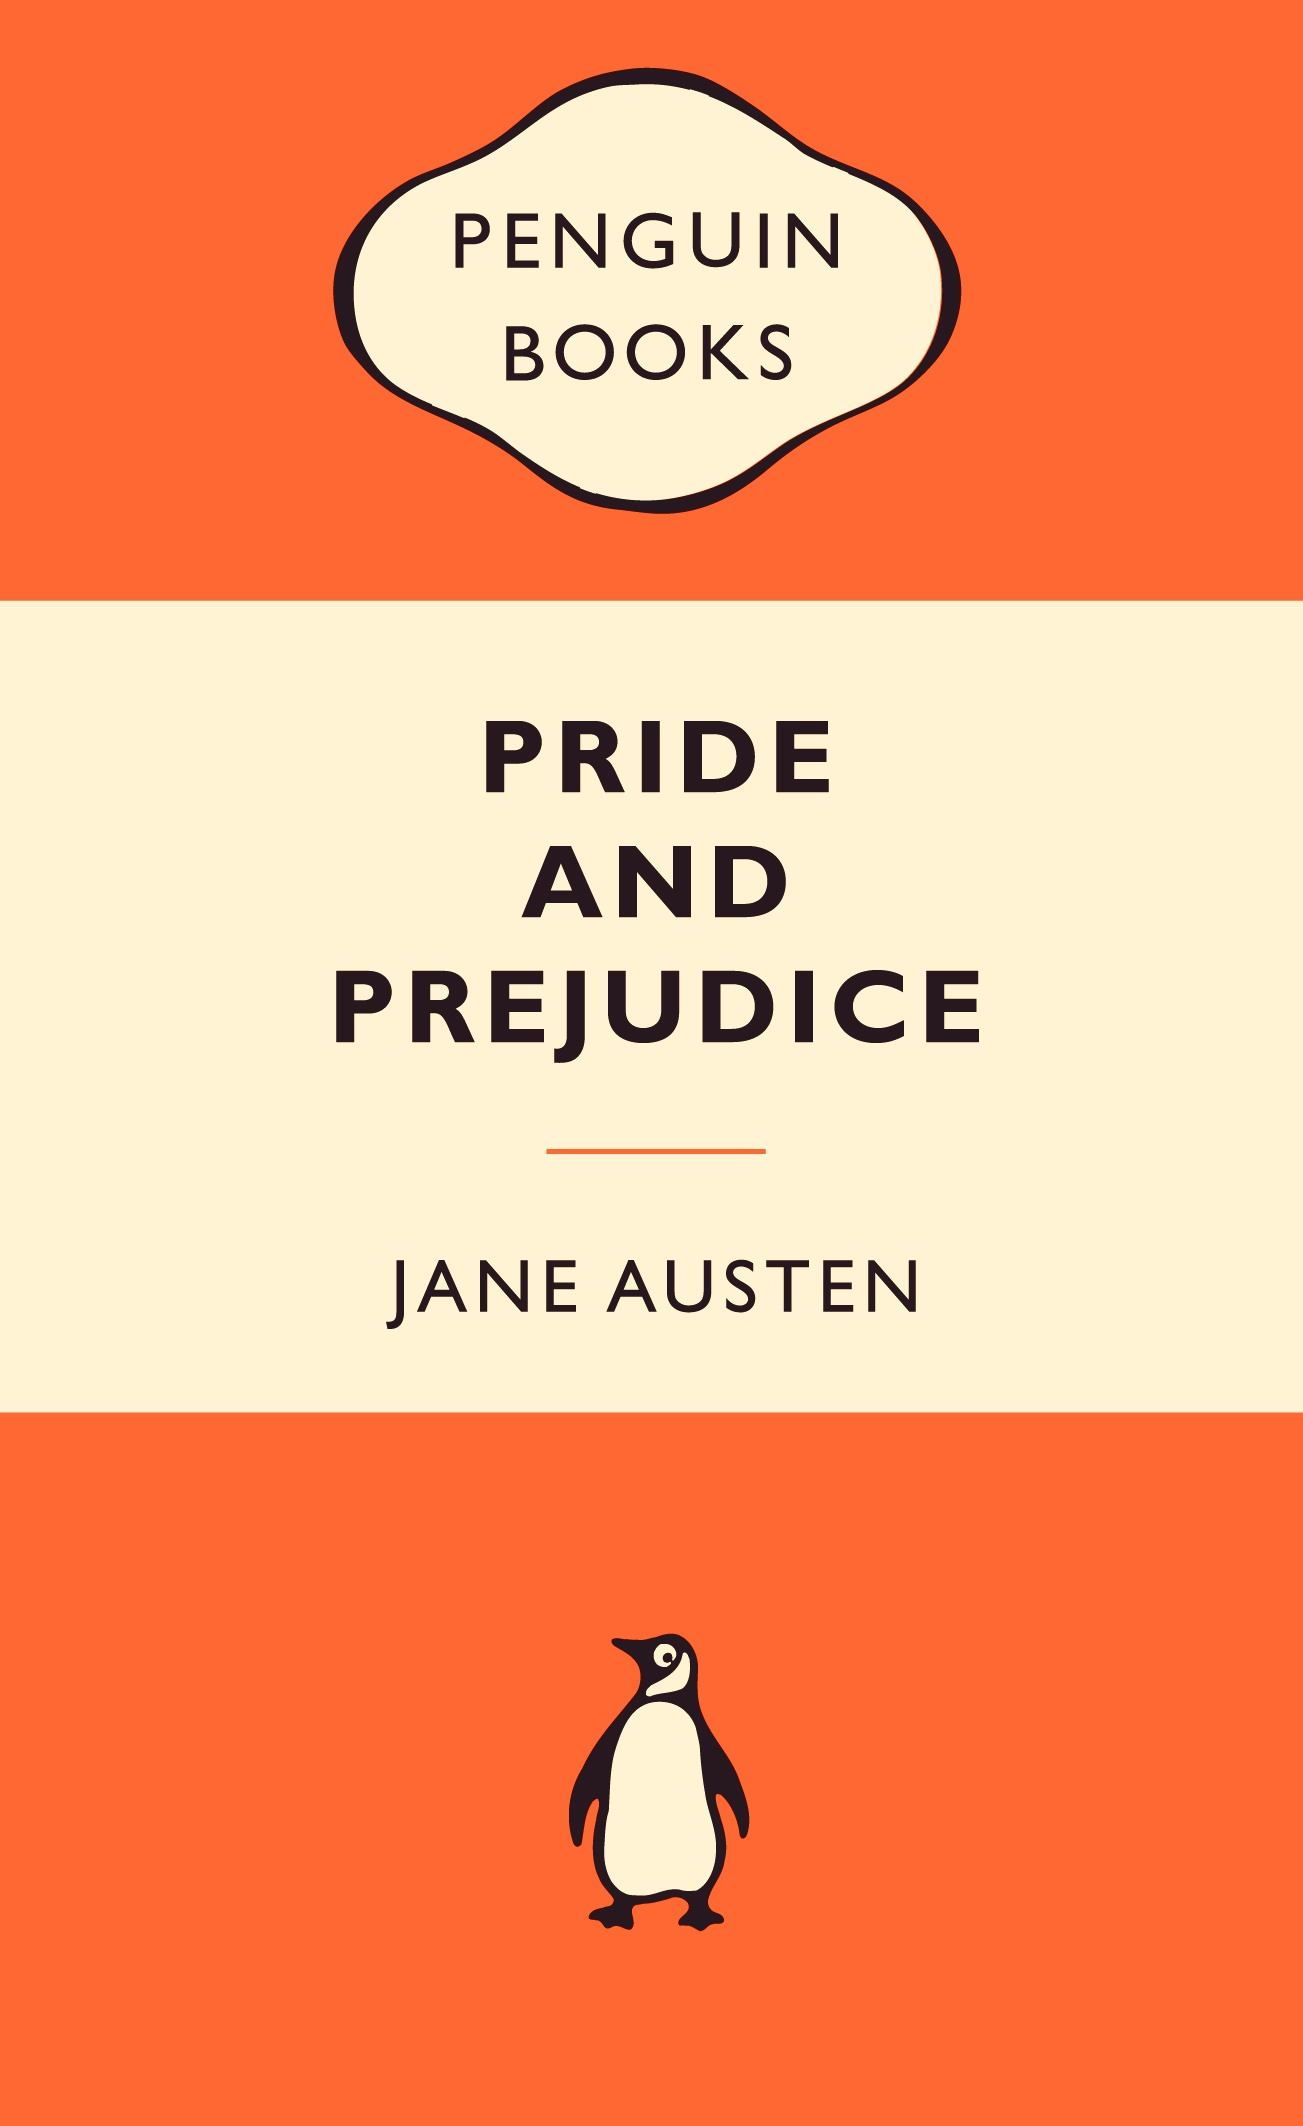 friday bookblogging penguin turns edition austenblog pride and prejudice penguin cover